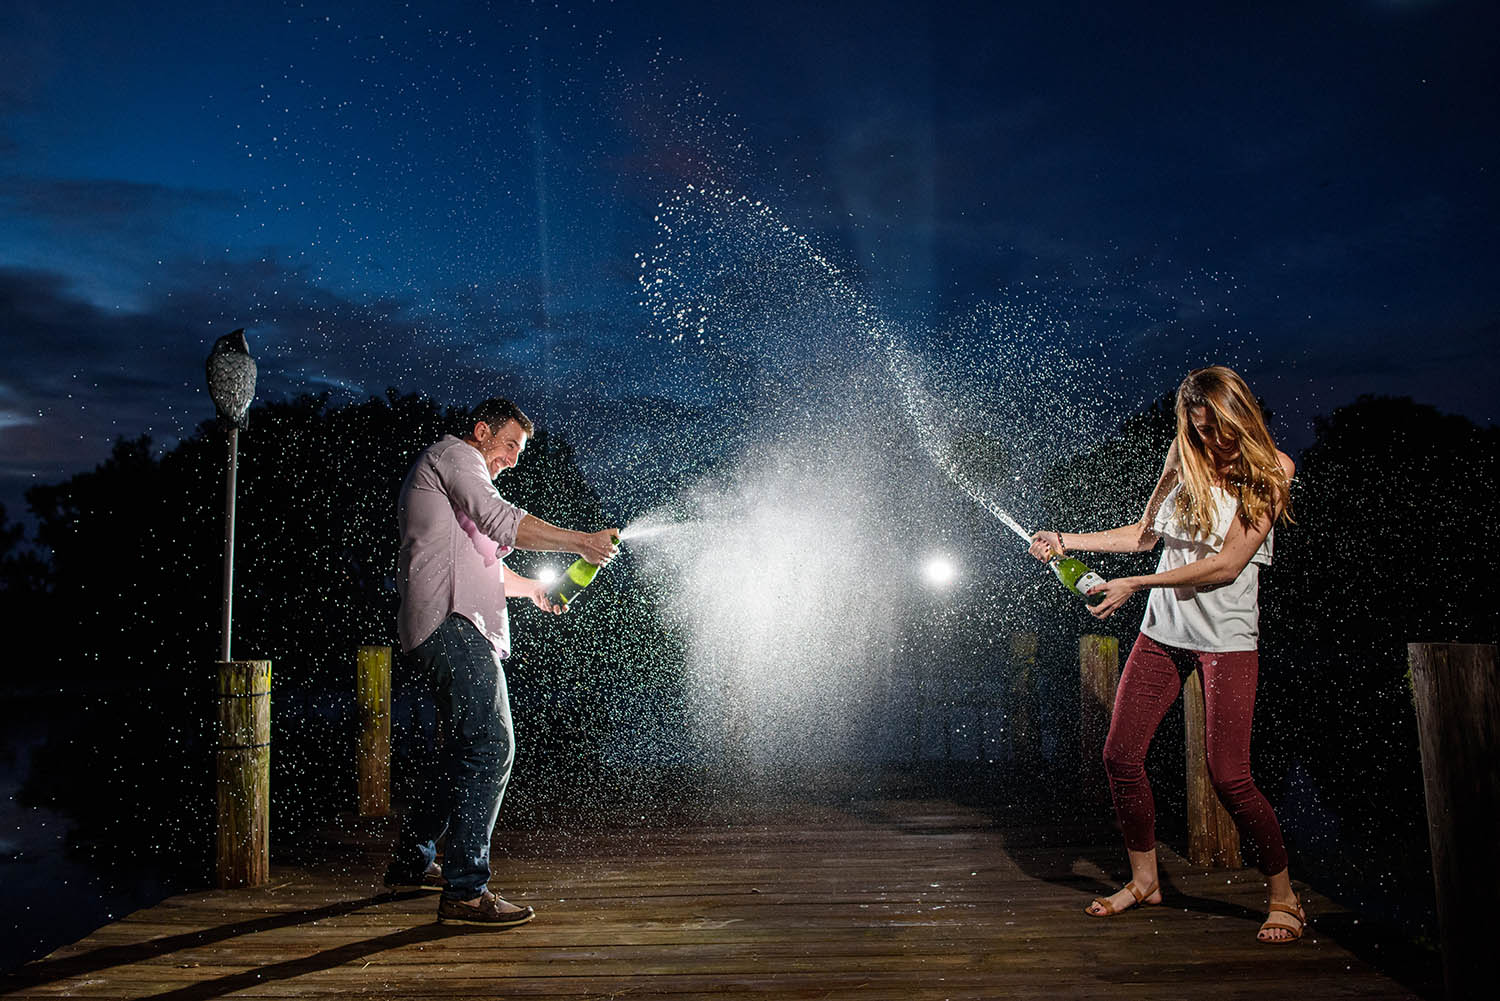 bride-and-groom-celebrate-engagement-with-champagne